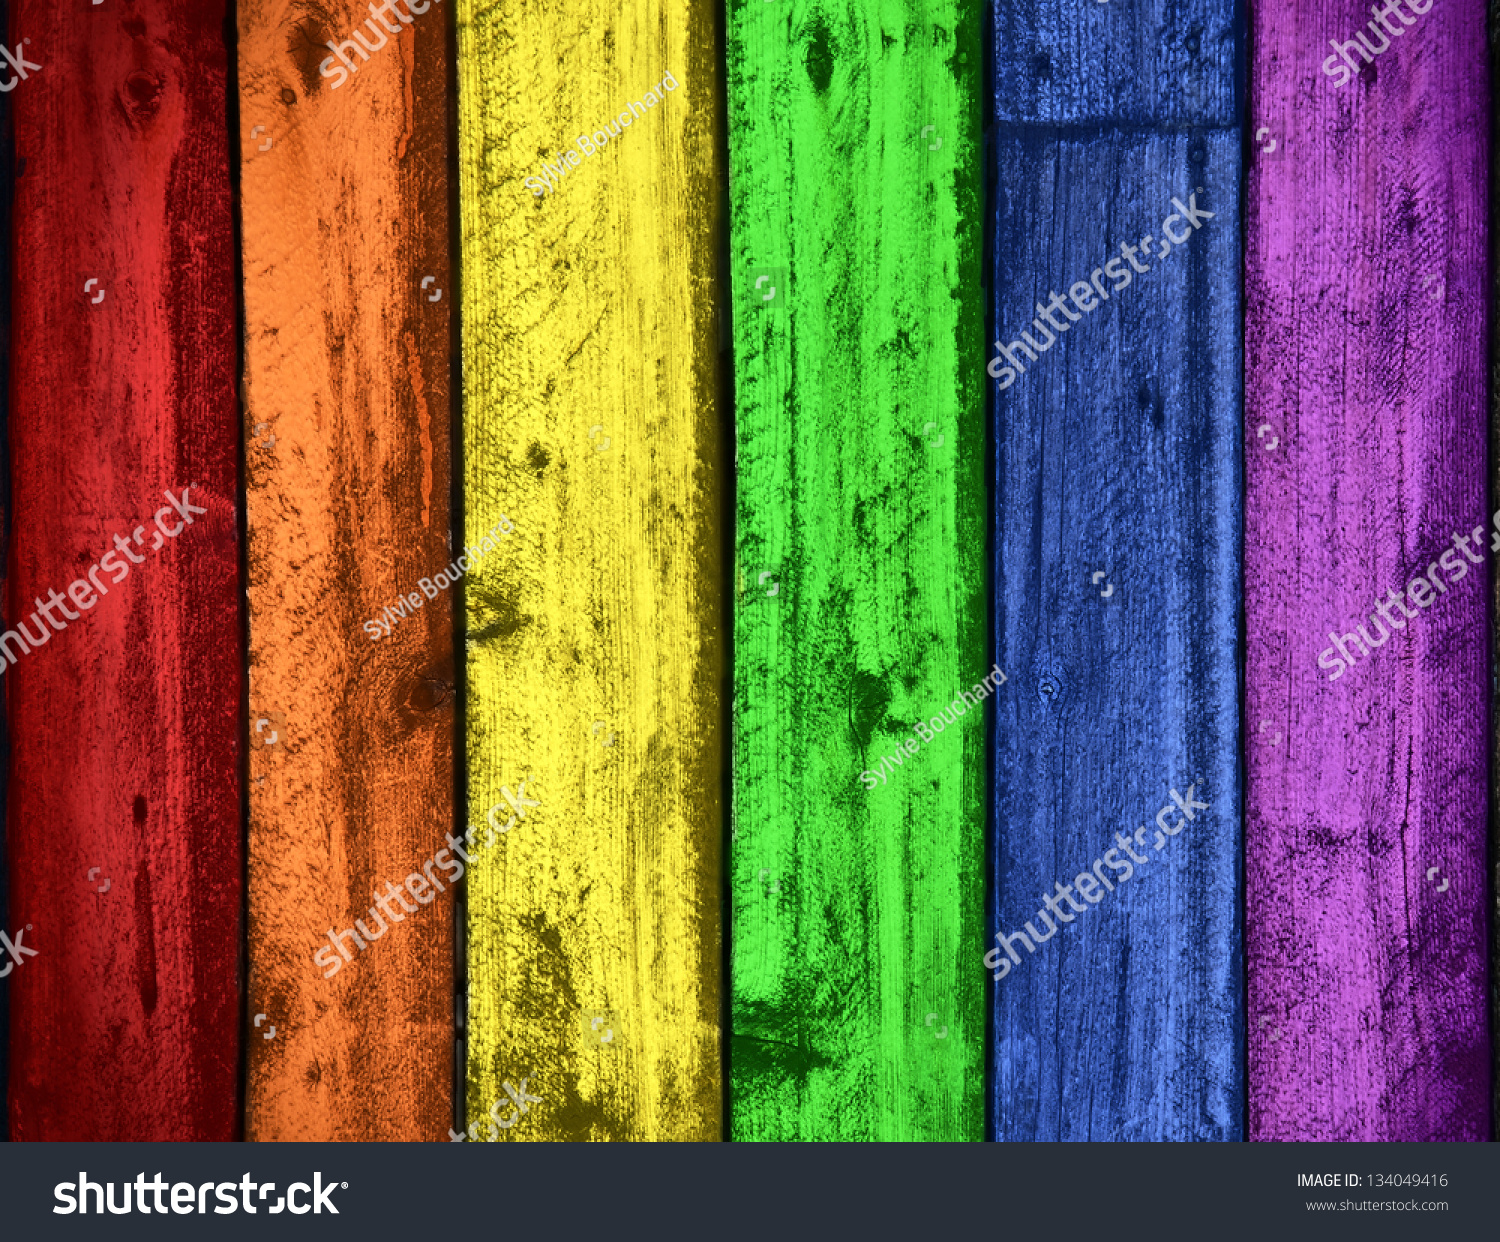 background of grungy old wood planks in rainbow colors